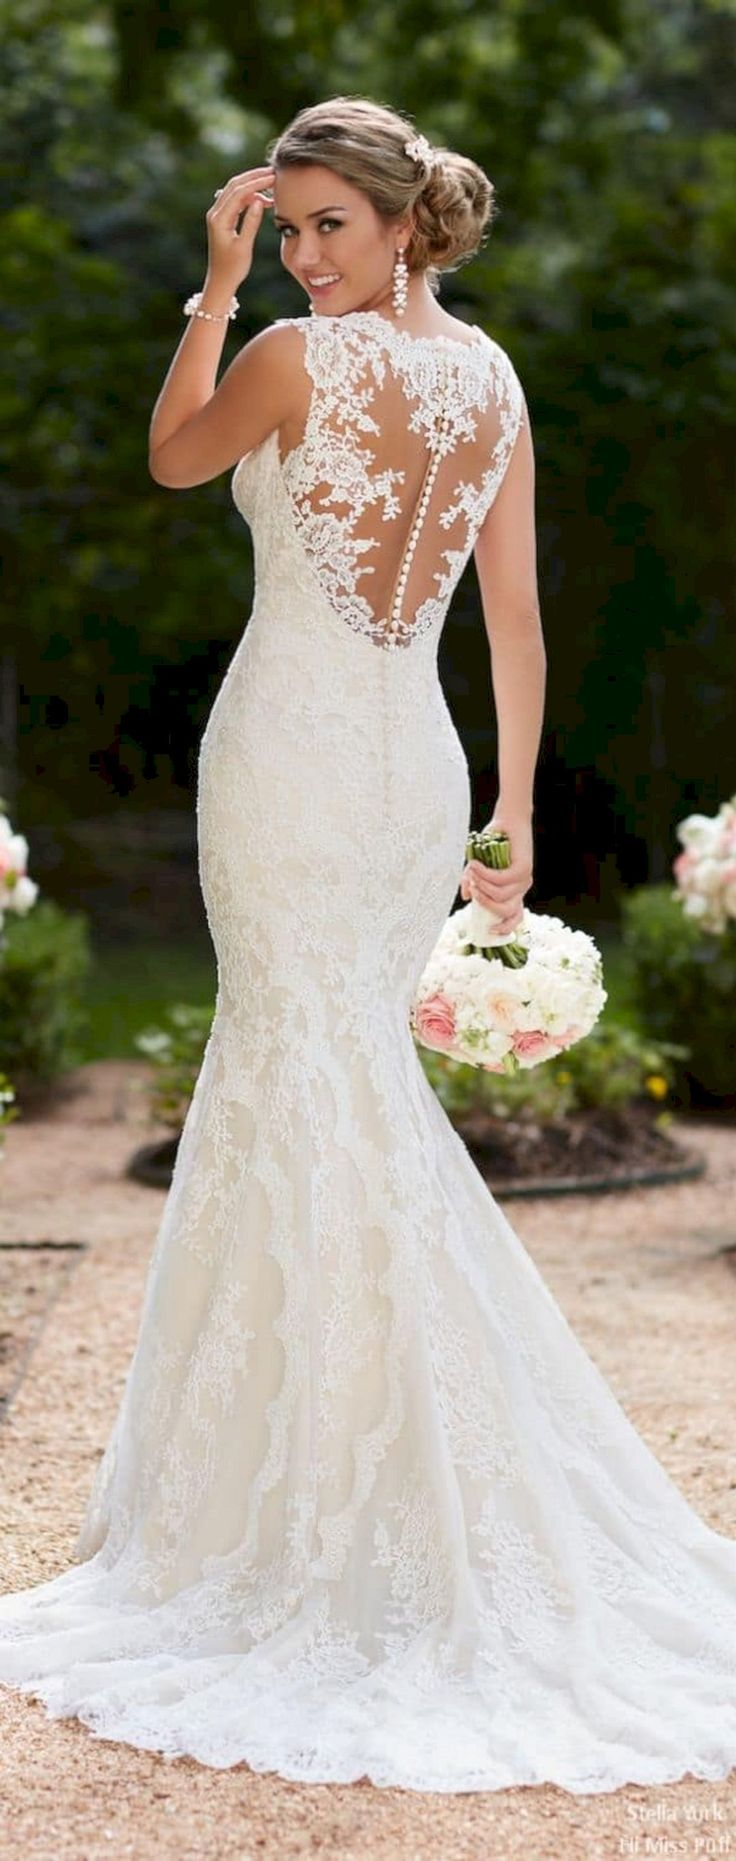 Best White Lace Wedding Dress Ideas On Pinterest Lace